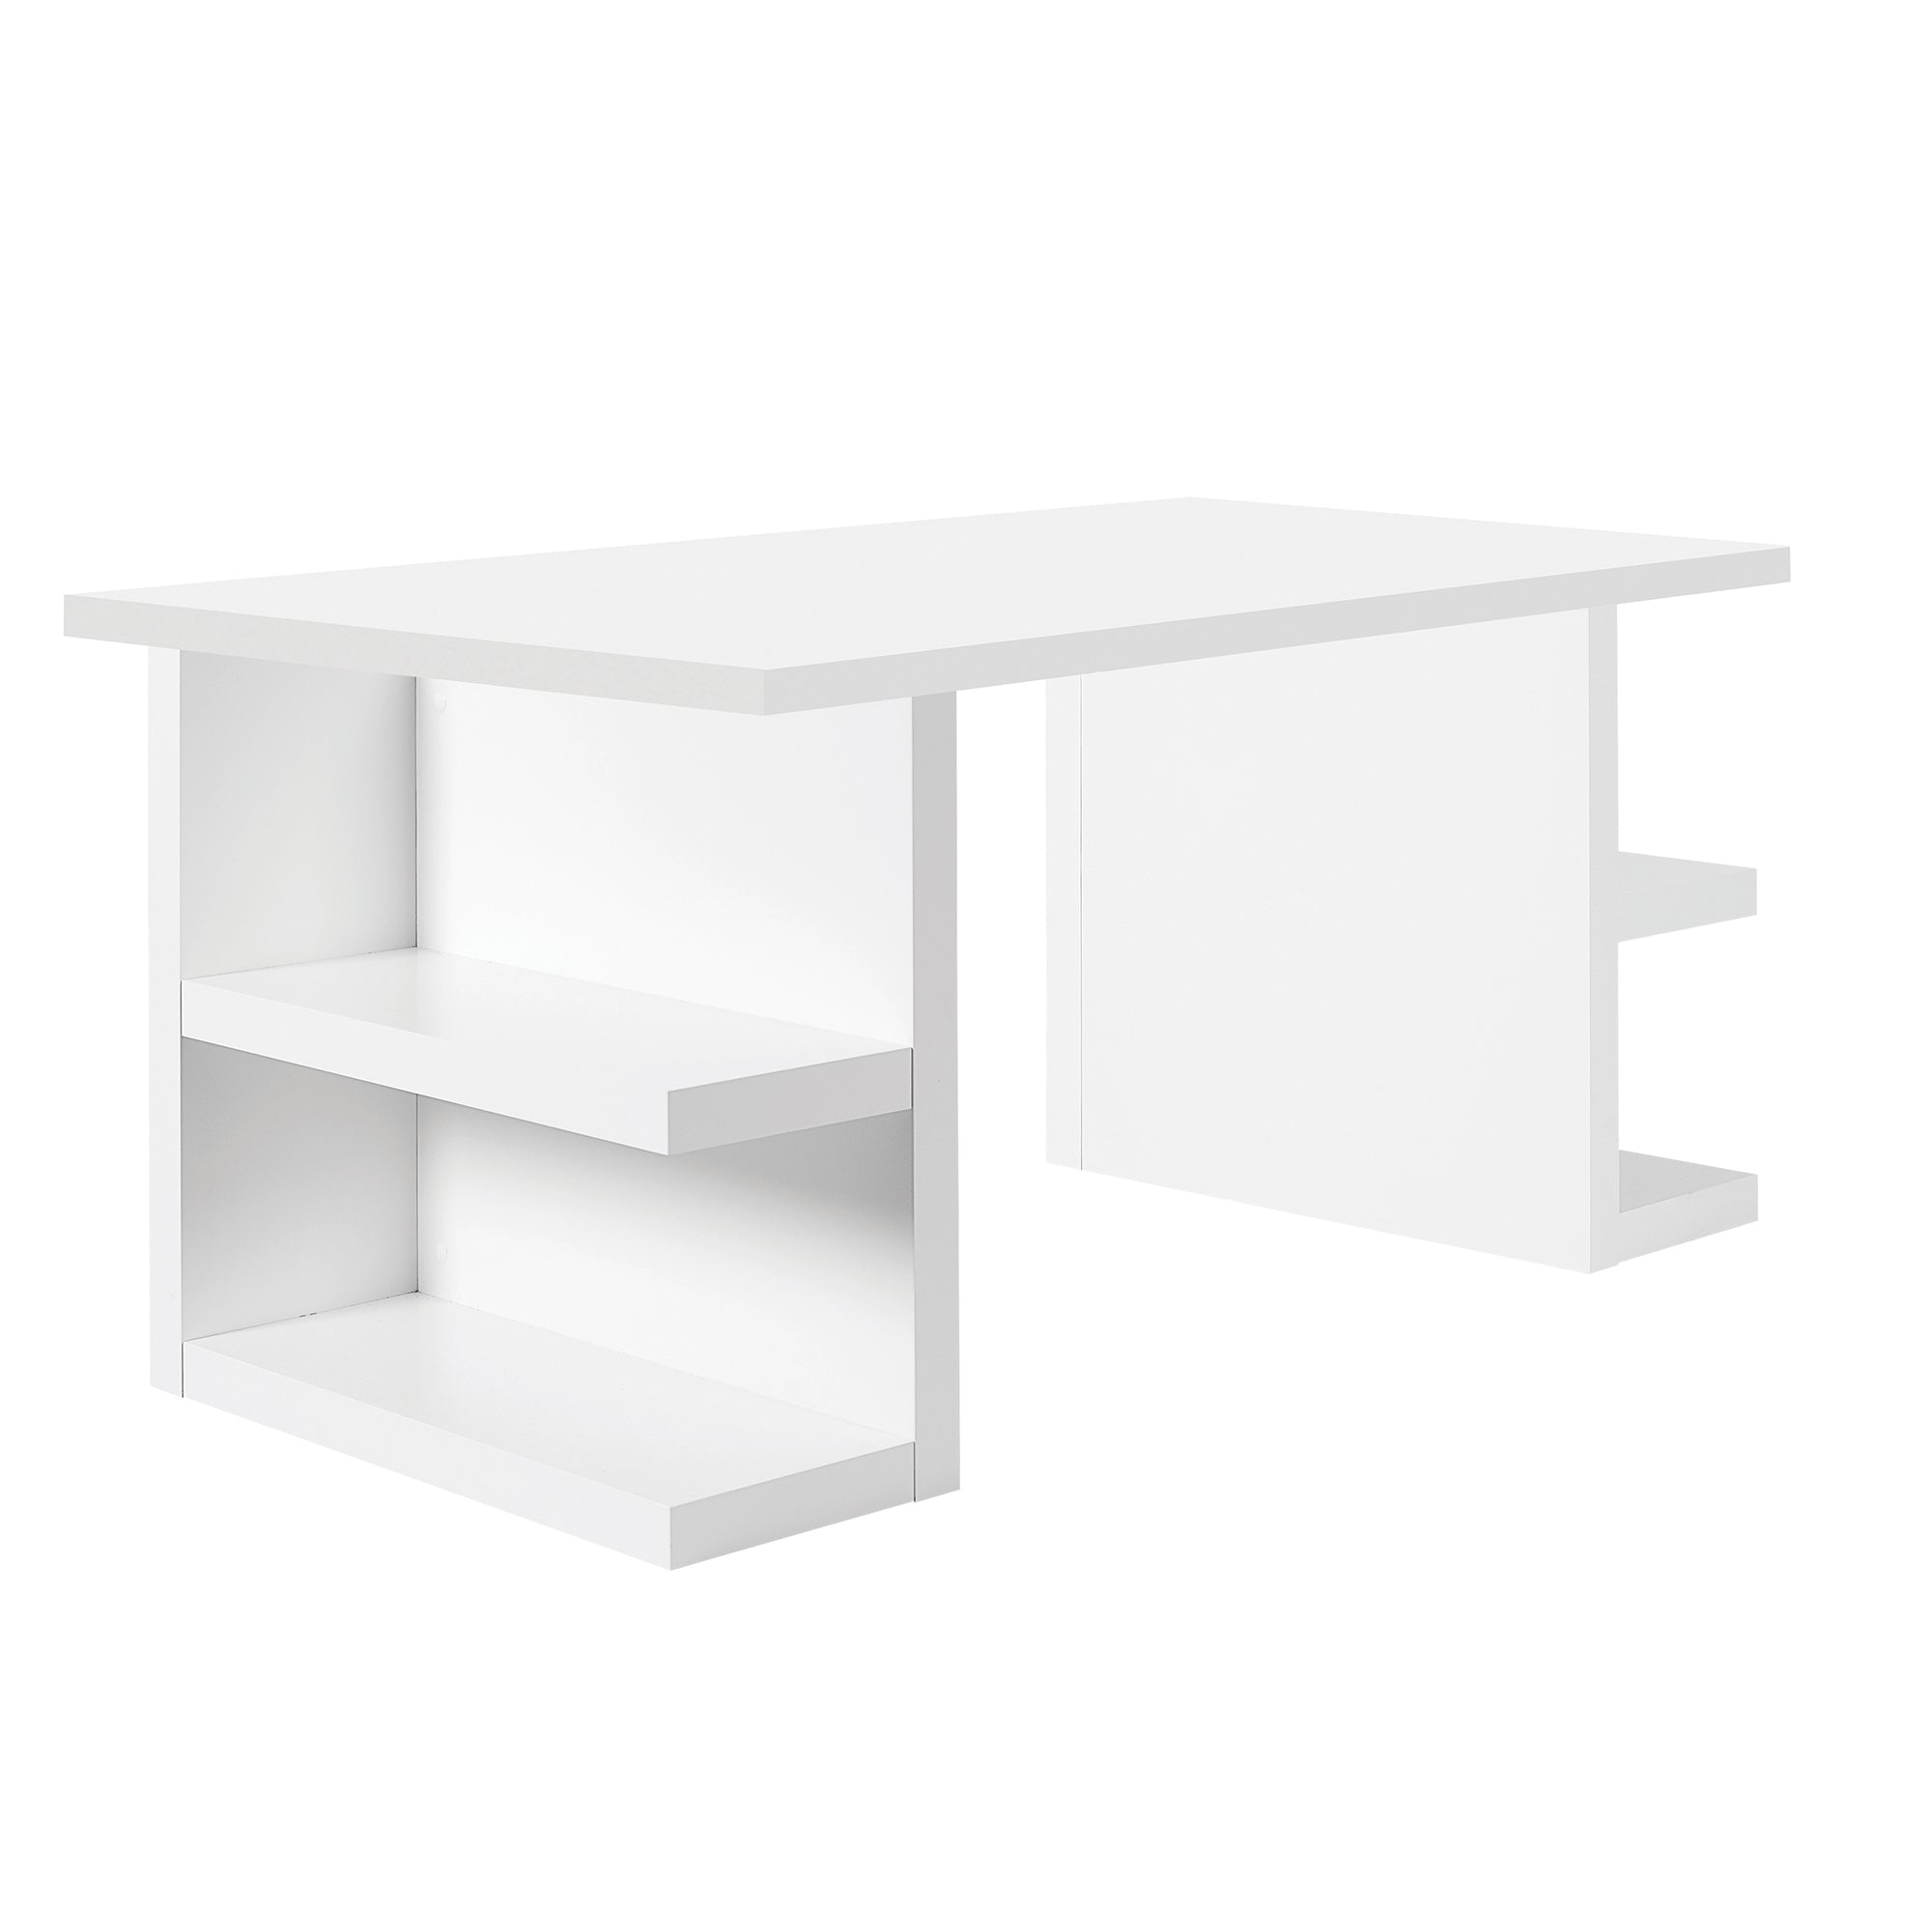 Multi 71 Table with Storage Legs